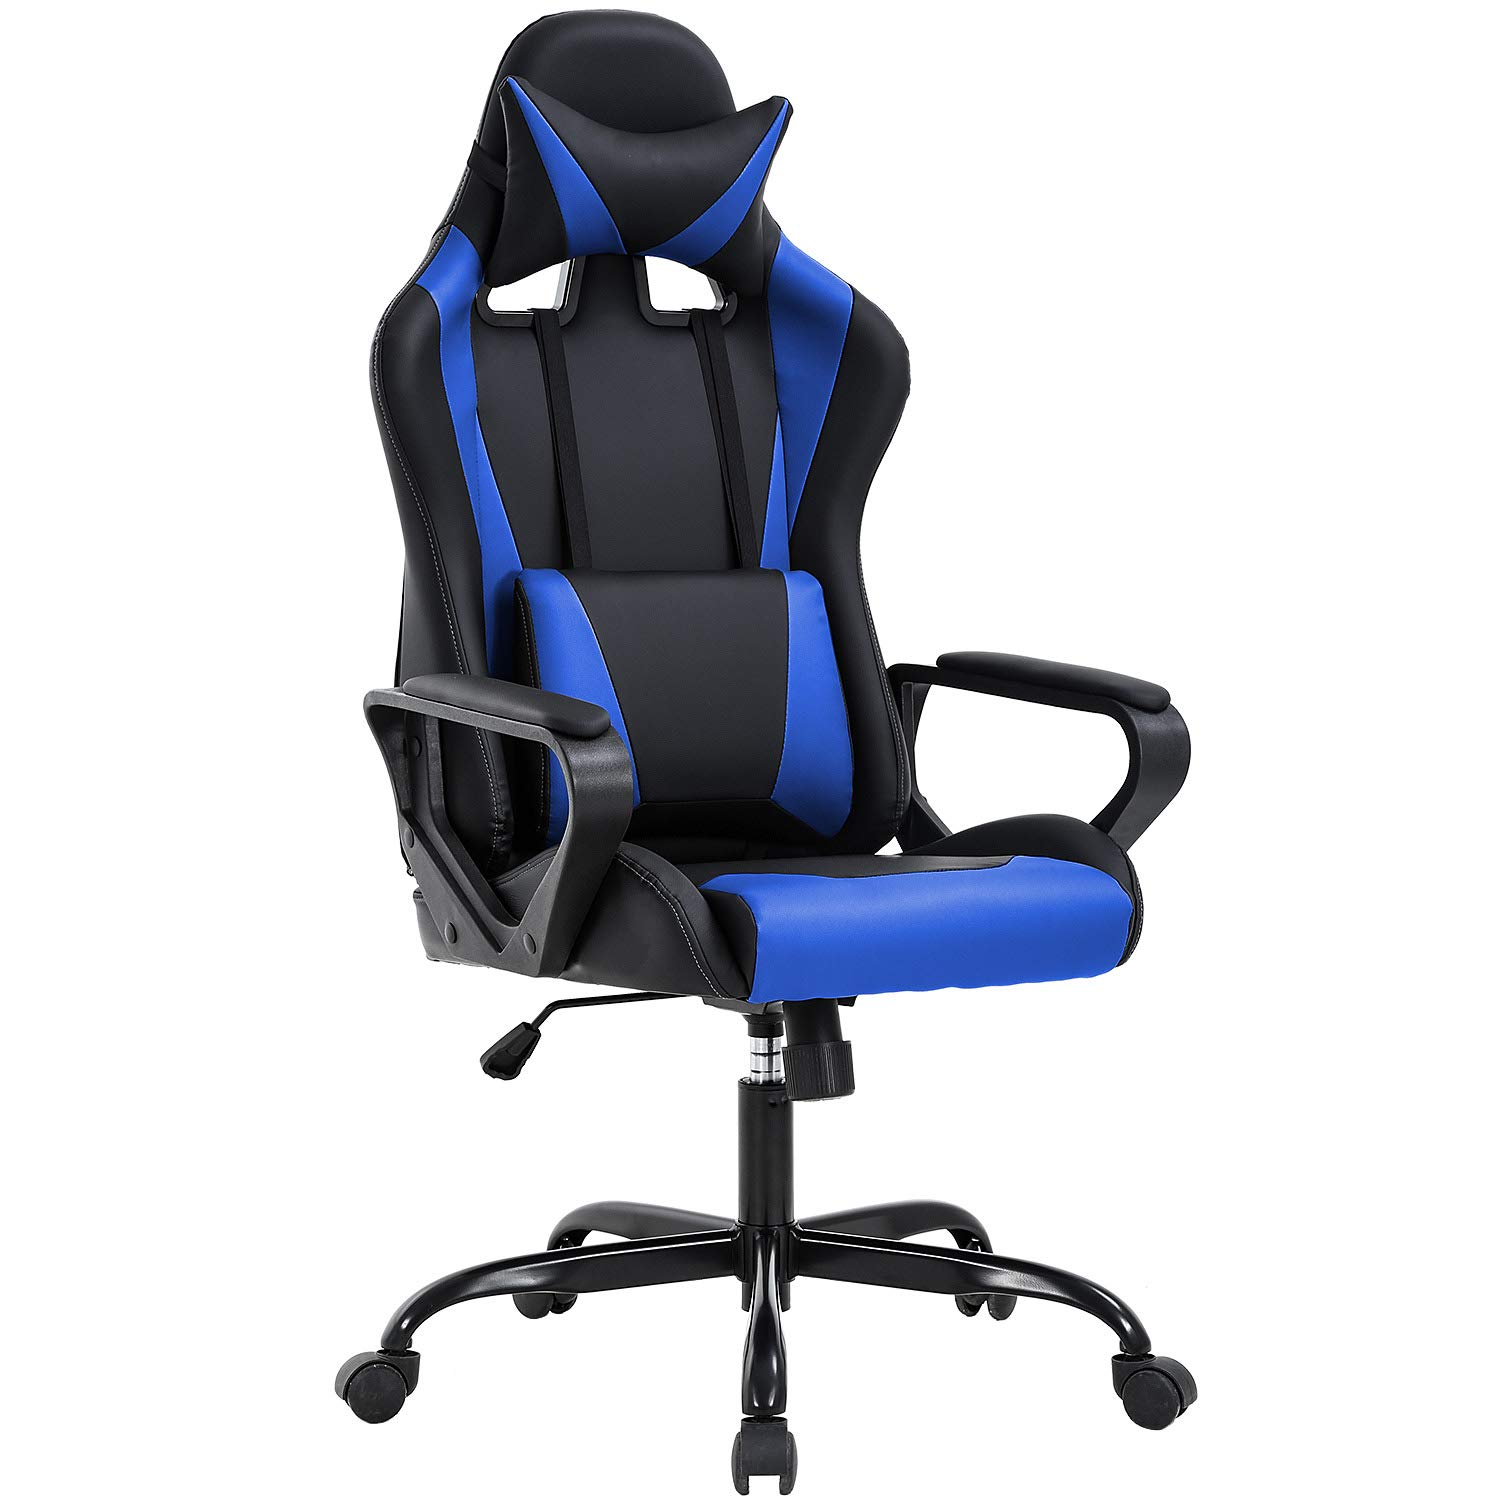 High-Back Gaming Chair PC Office Chair Computer Racing Chair PU Desk Task Chair Ergonomic Executive Swivel Rolling Chair with Lumbar Support for Back Pain Women, Men (Blue) by BestOffice